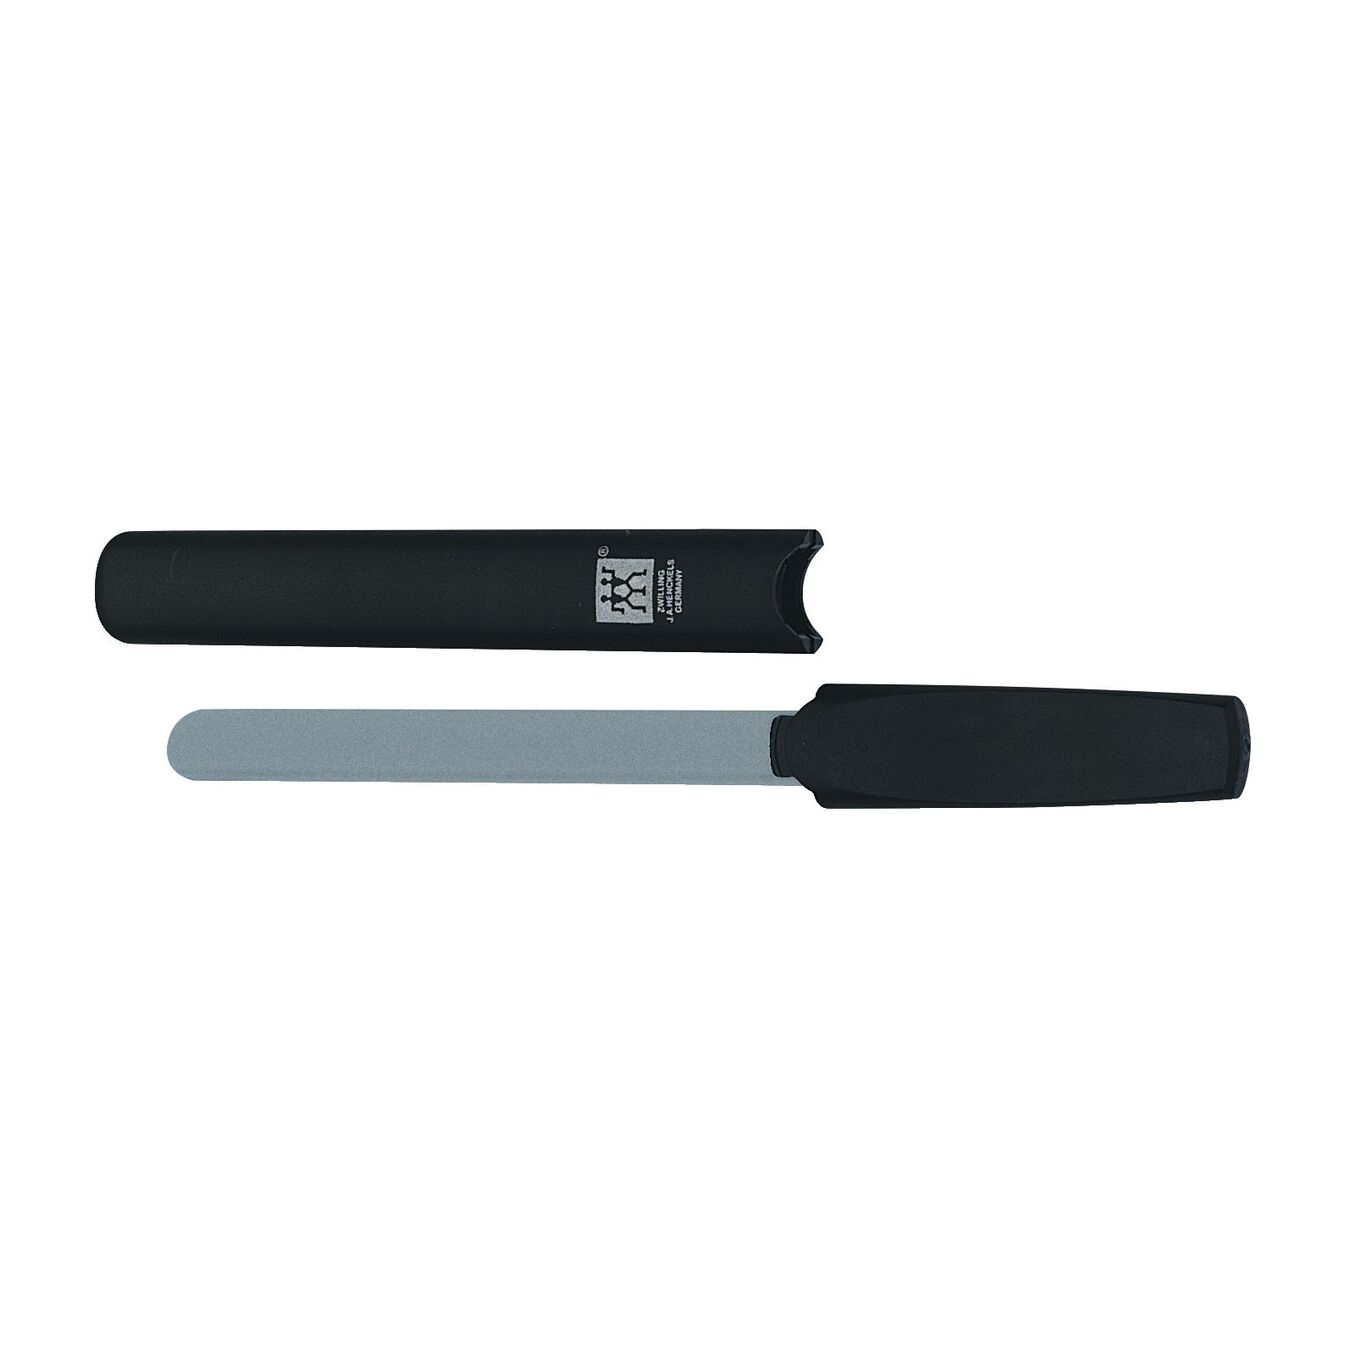 rounded Nail file,,large 1